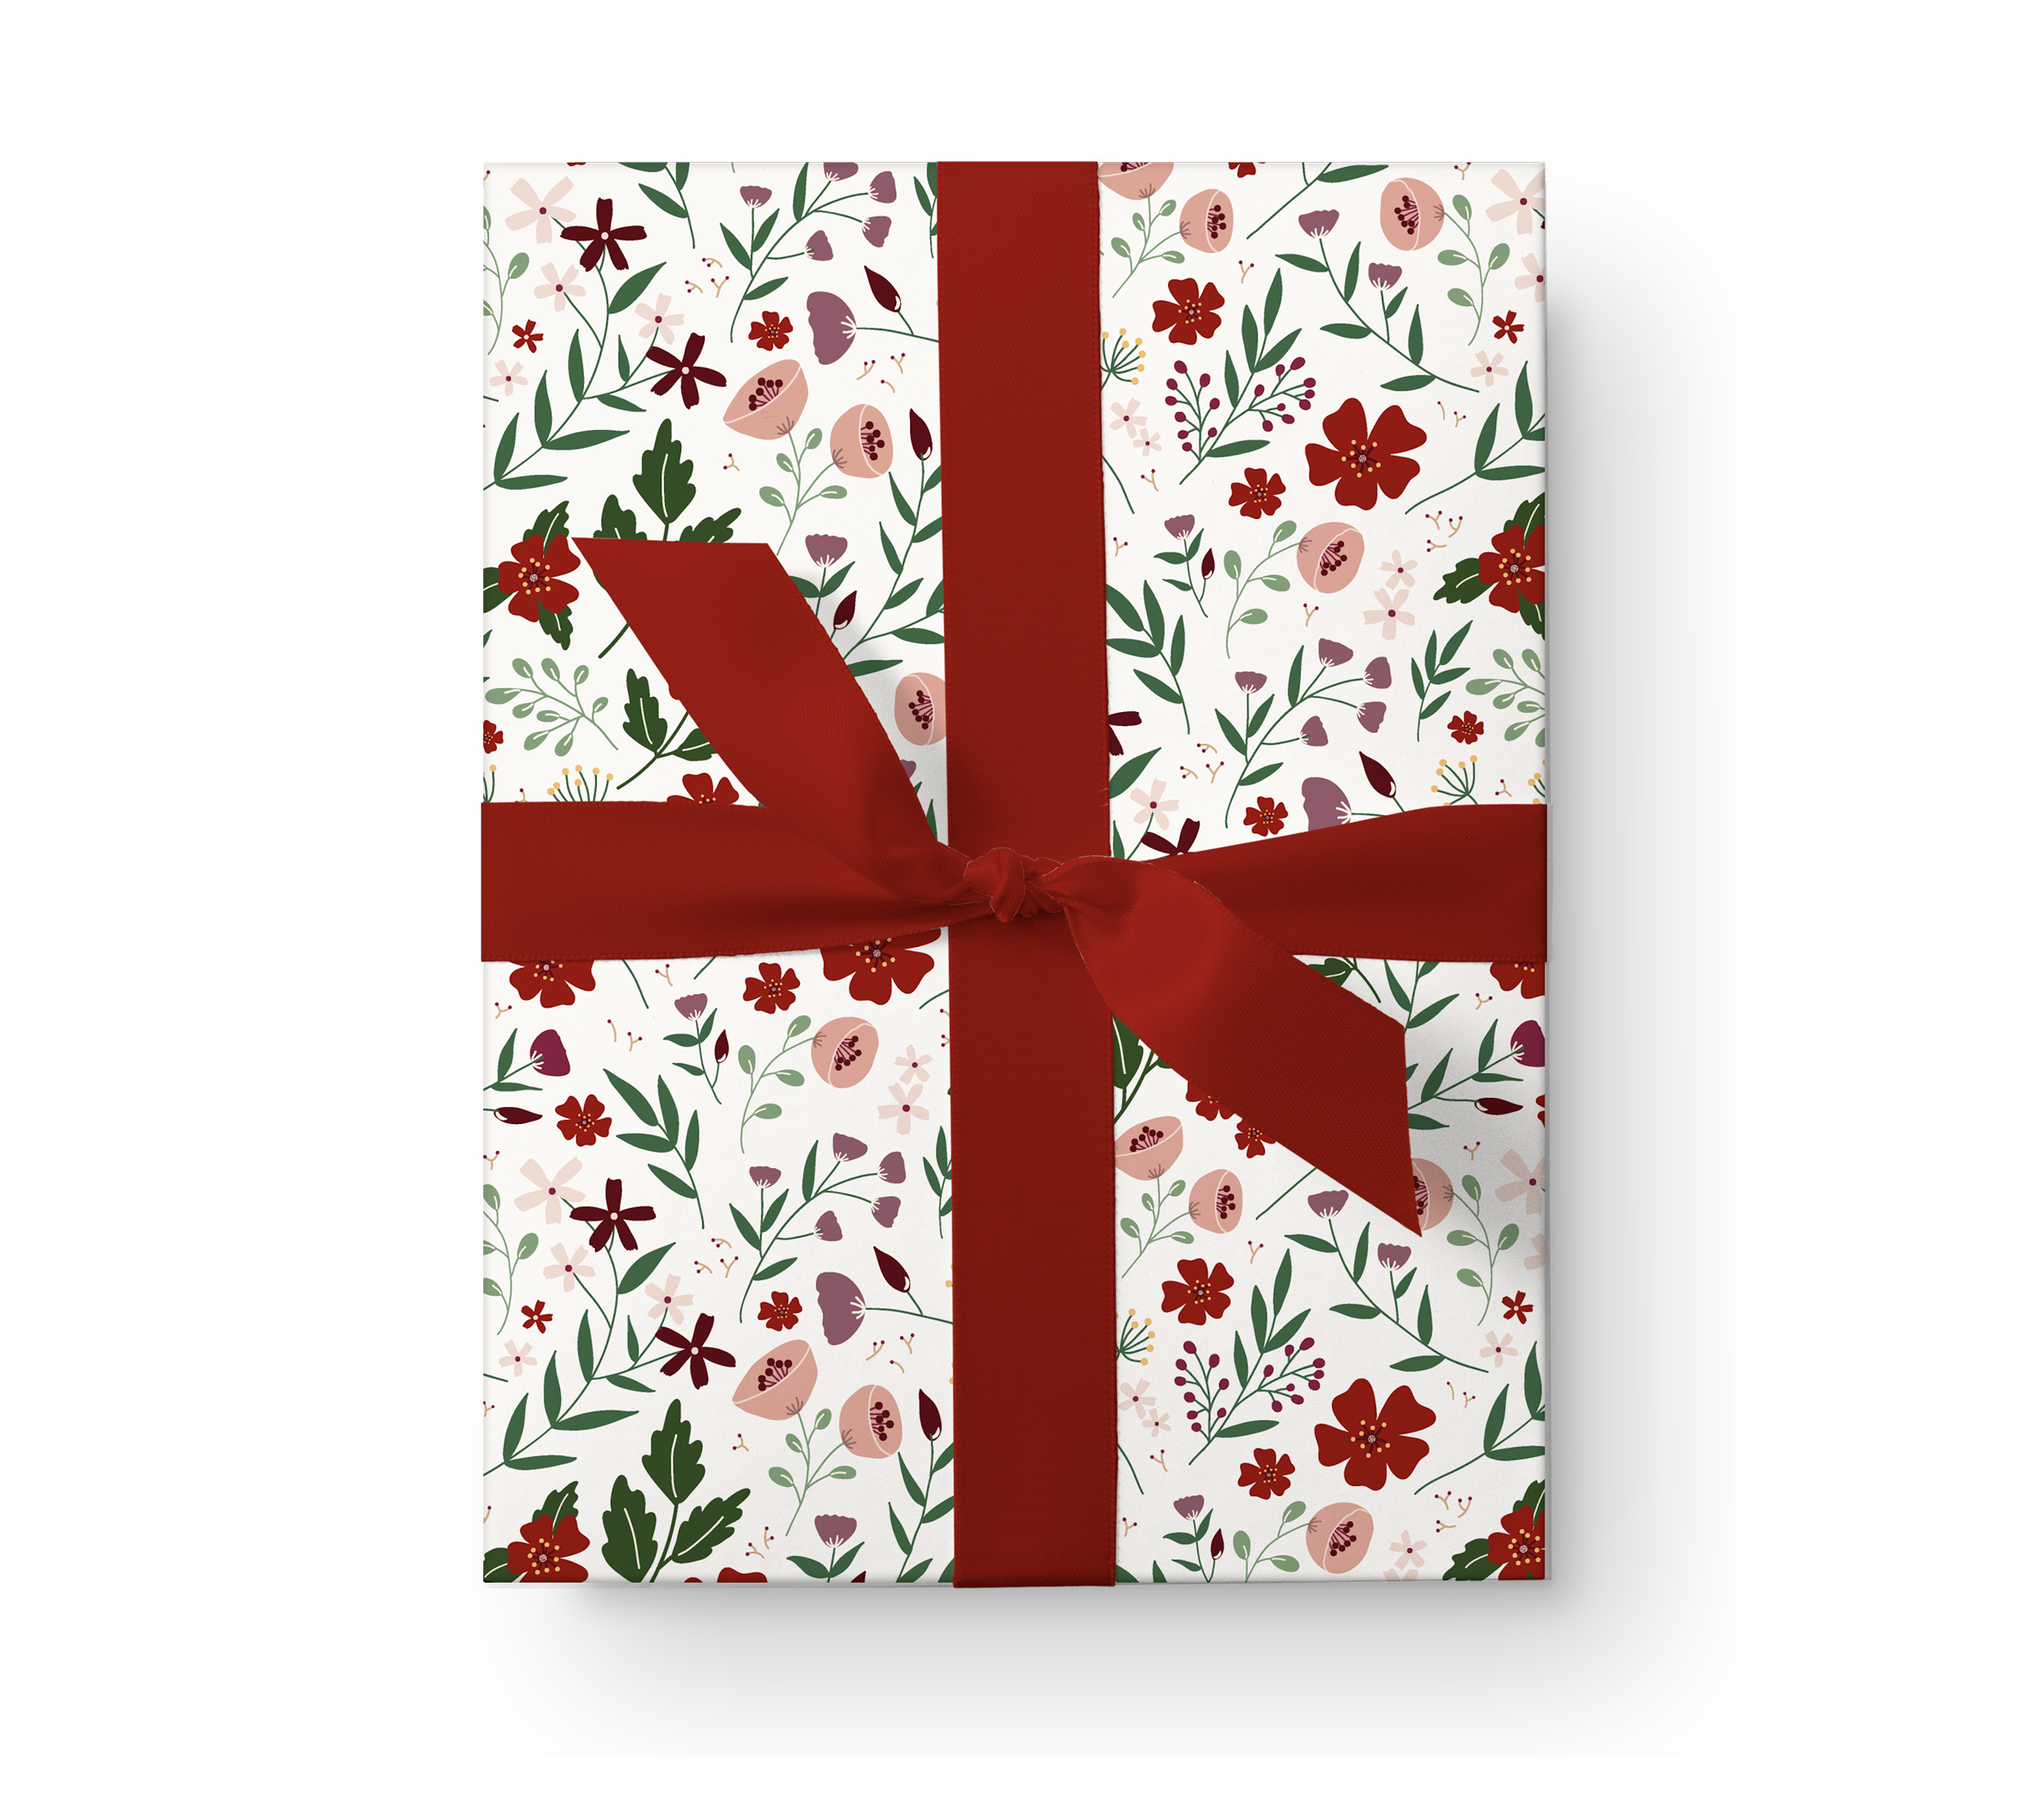 Illustrated wrapping paper gift box with a beautiful red floral pattern on a white background.